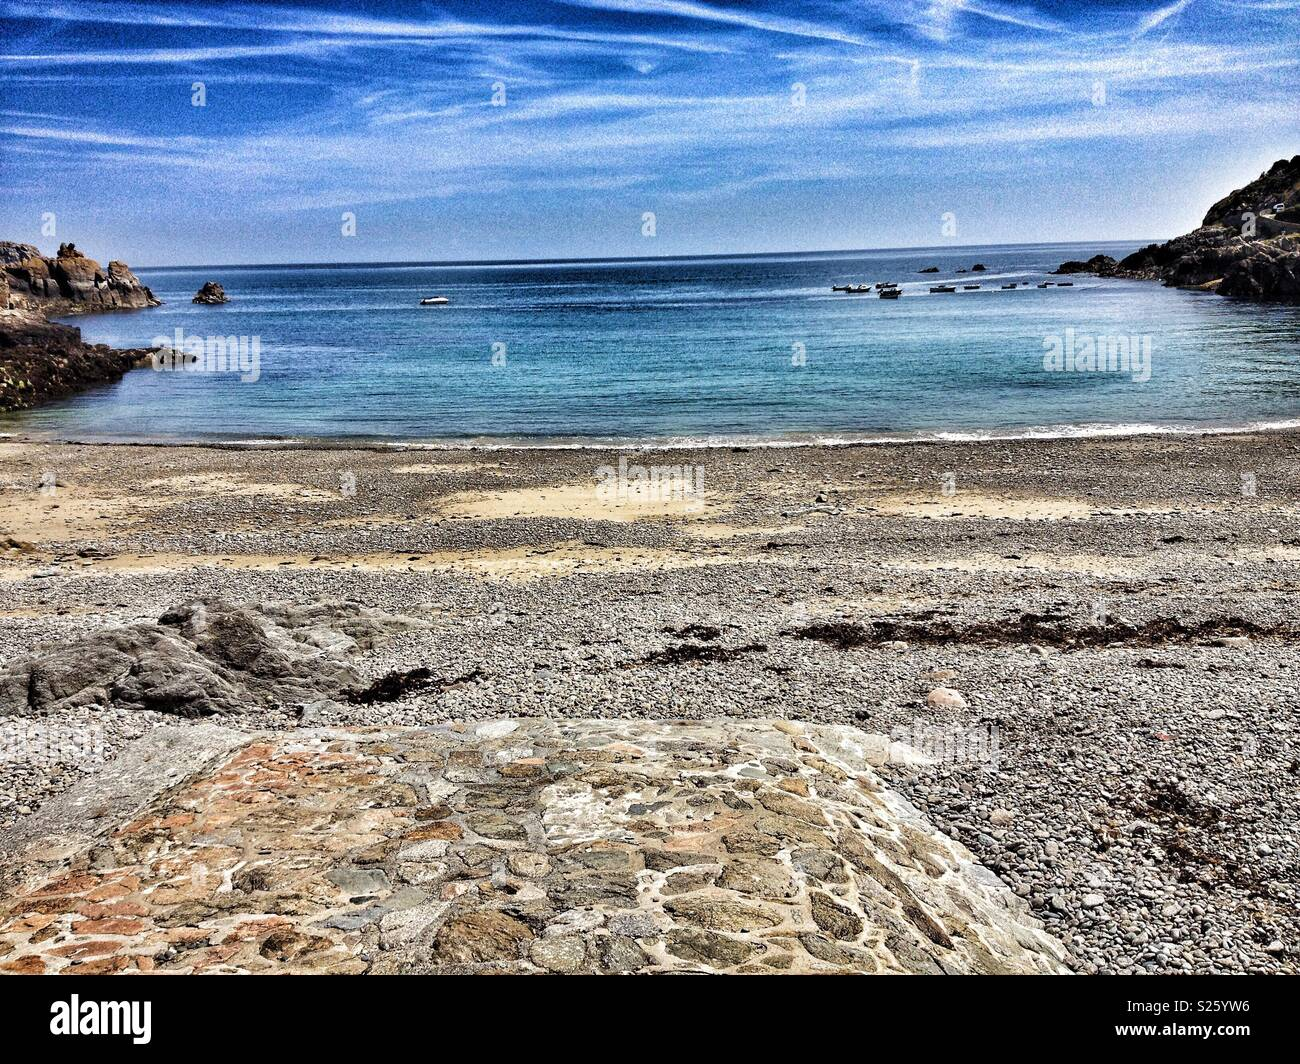 Inviting sea, Petit Bot, Guernsey, Channel Islands. - Stock Image